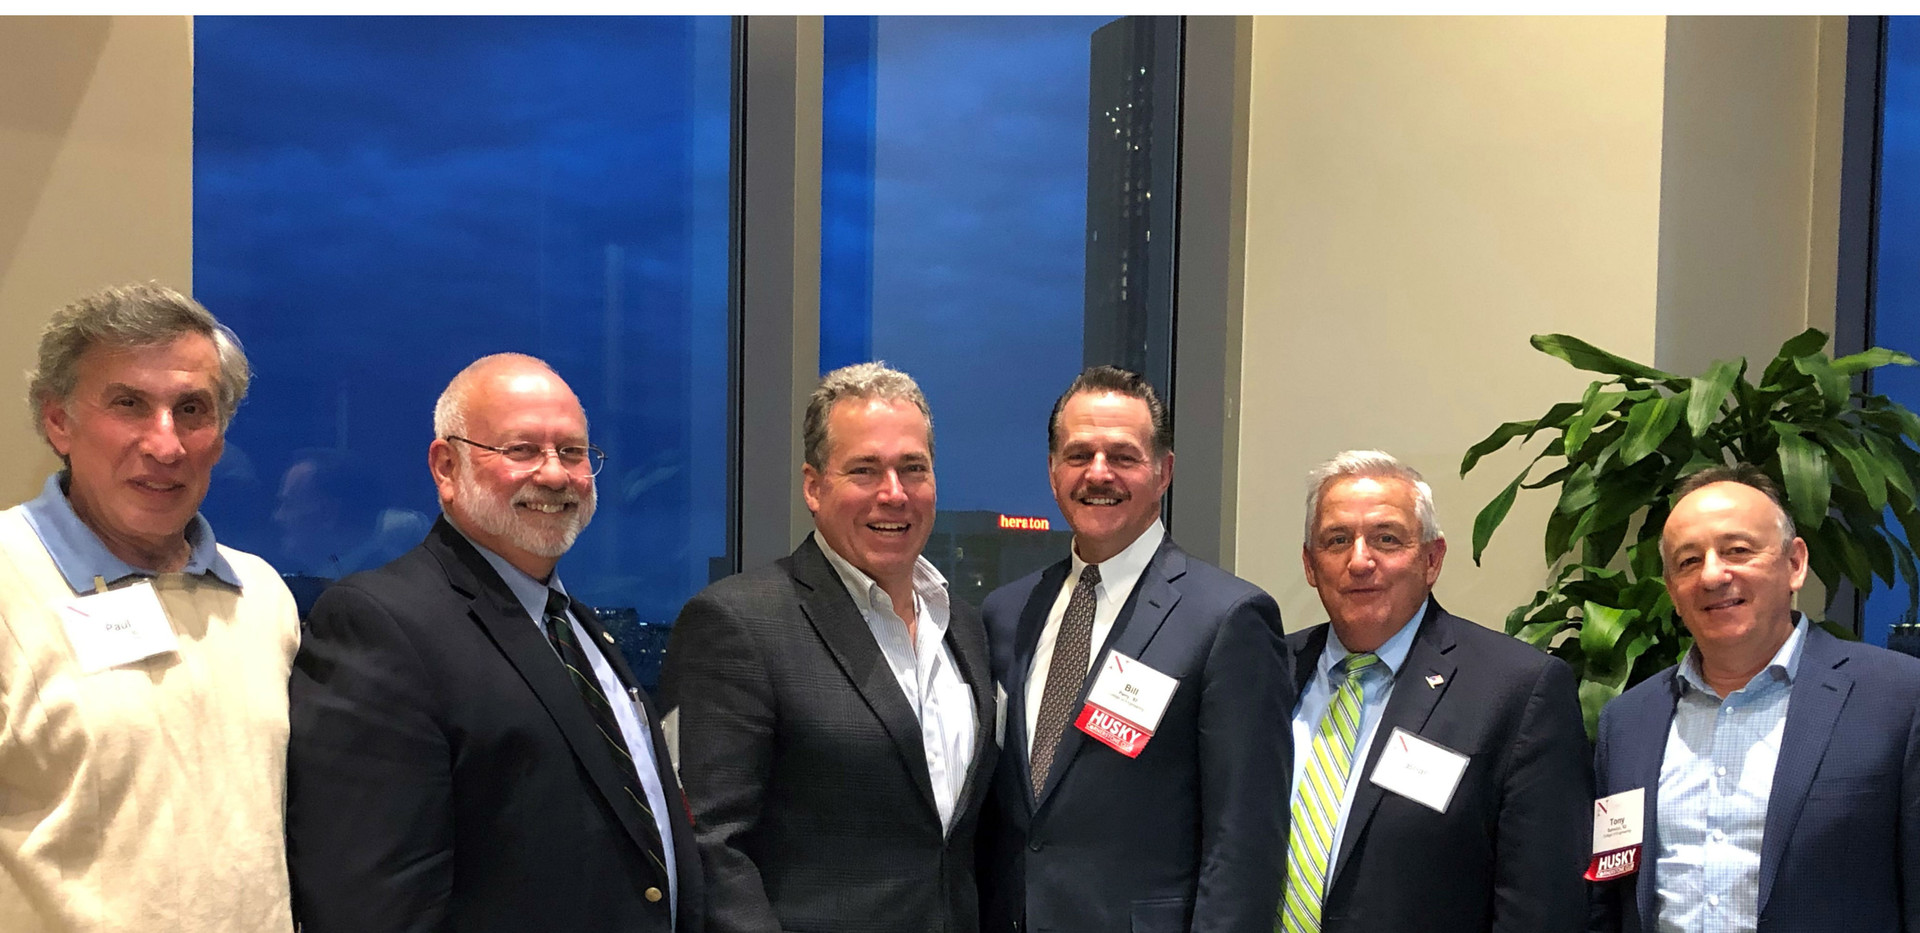 Bill Perry and fellow alums at the 2019 NU Civil Engineering Annual Alumni Dinner – 5/09/19